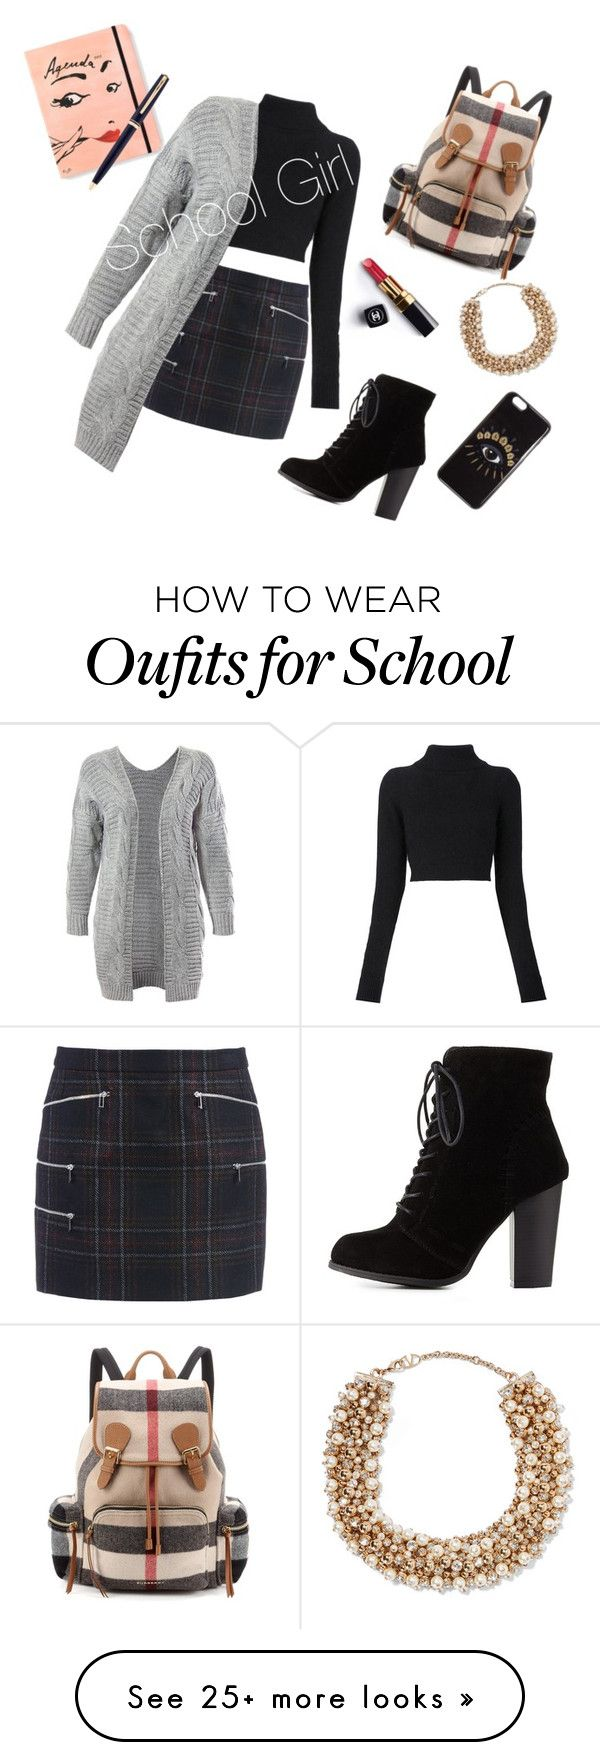 """ School Girl "" by roseblossom23 on Polyvore featuring Barbara Bui, Balmain, Sans Souci, Chanel, Charlotte Russe, Burberry, Valentino, Kenzo, Kate Spade and Montblanc"